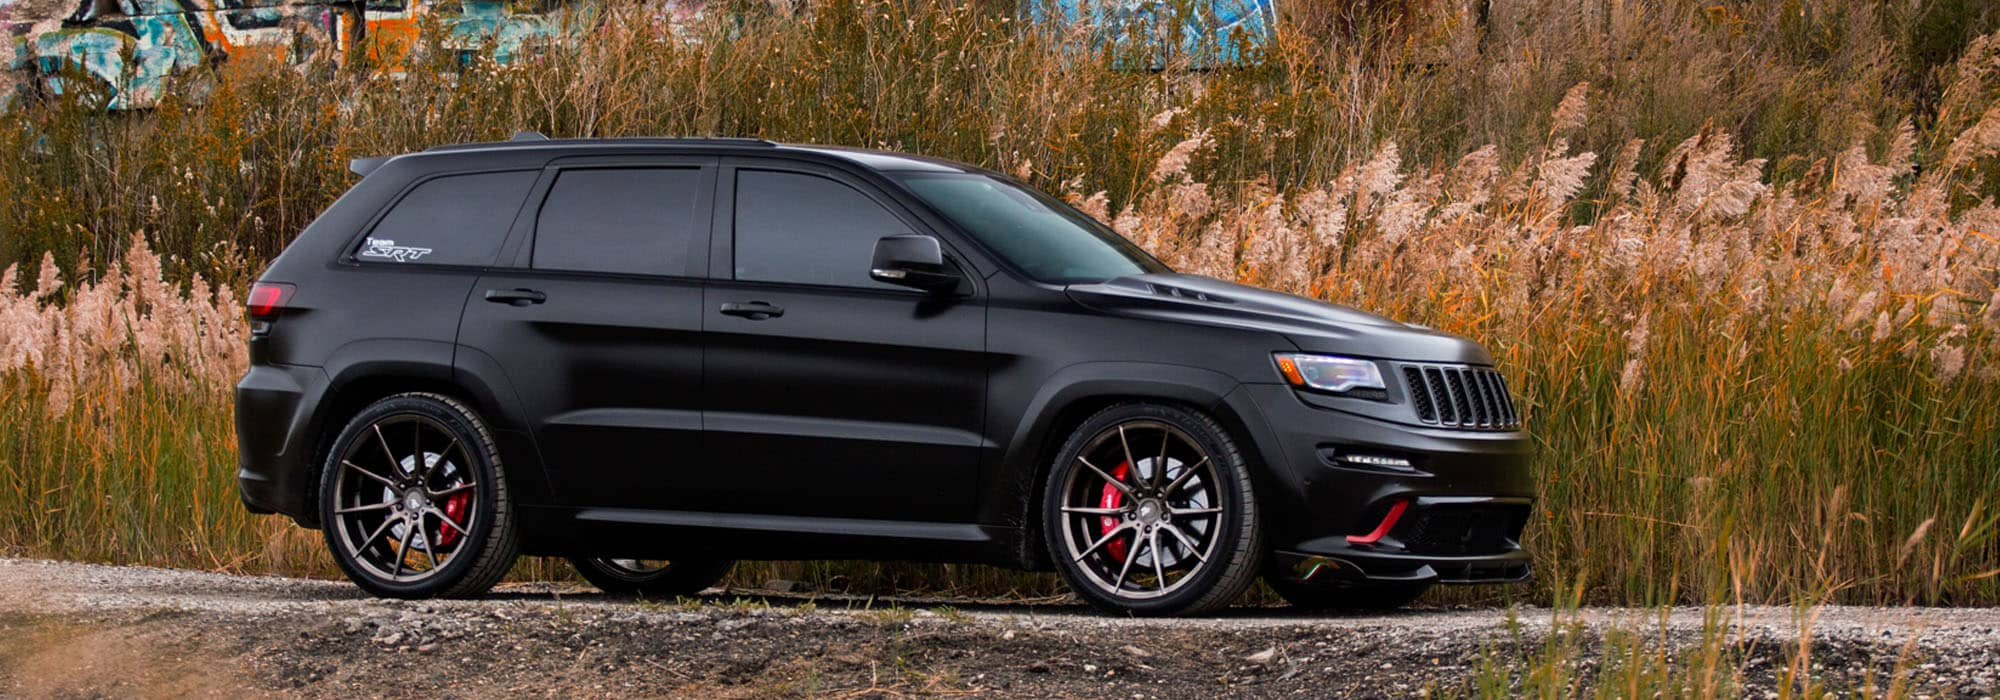 Jeep Grand Cherokee Srt Aftermarket Wheels